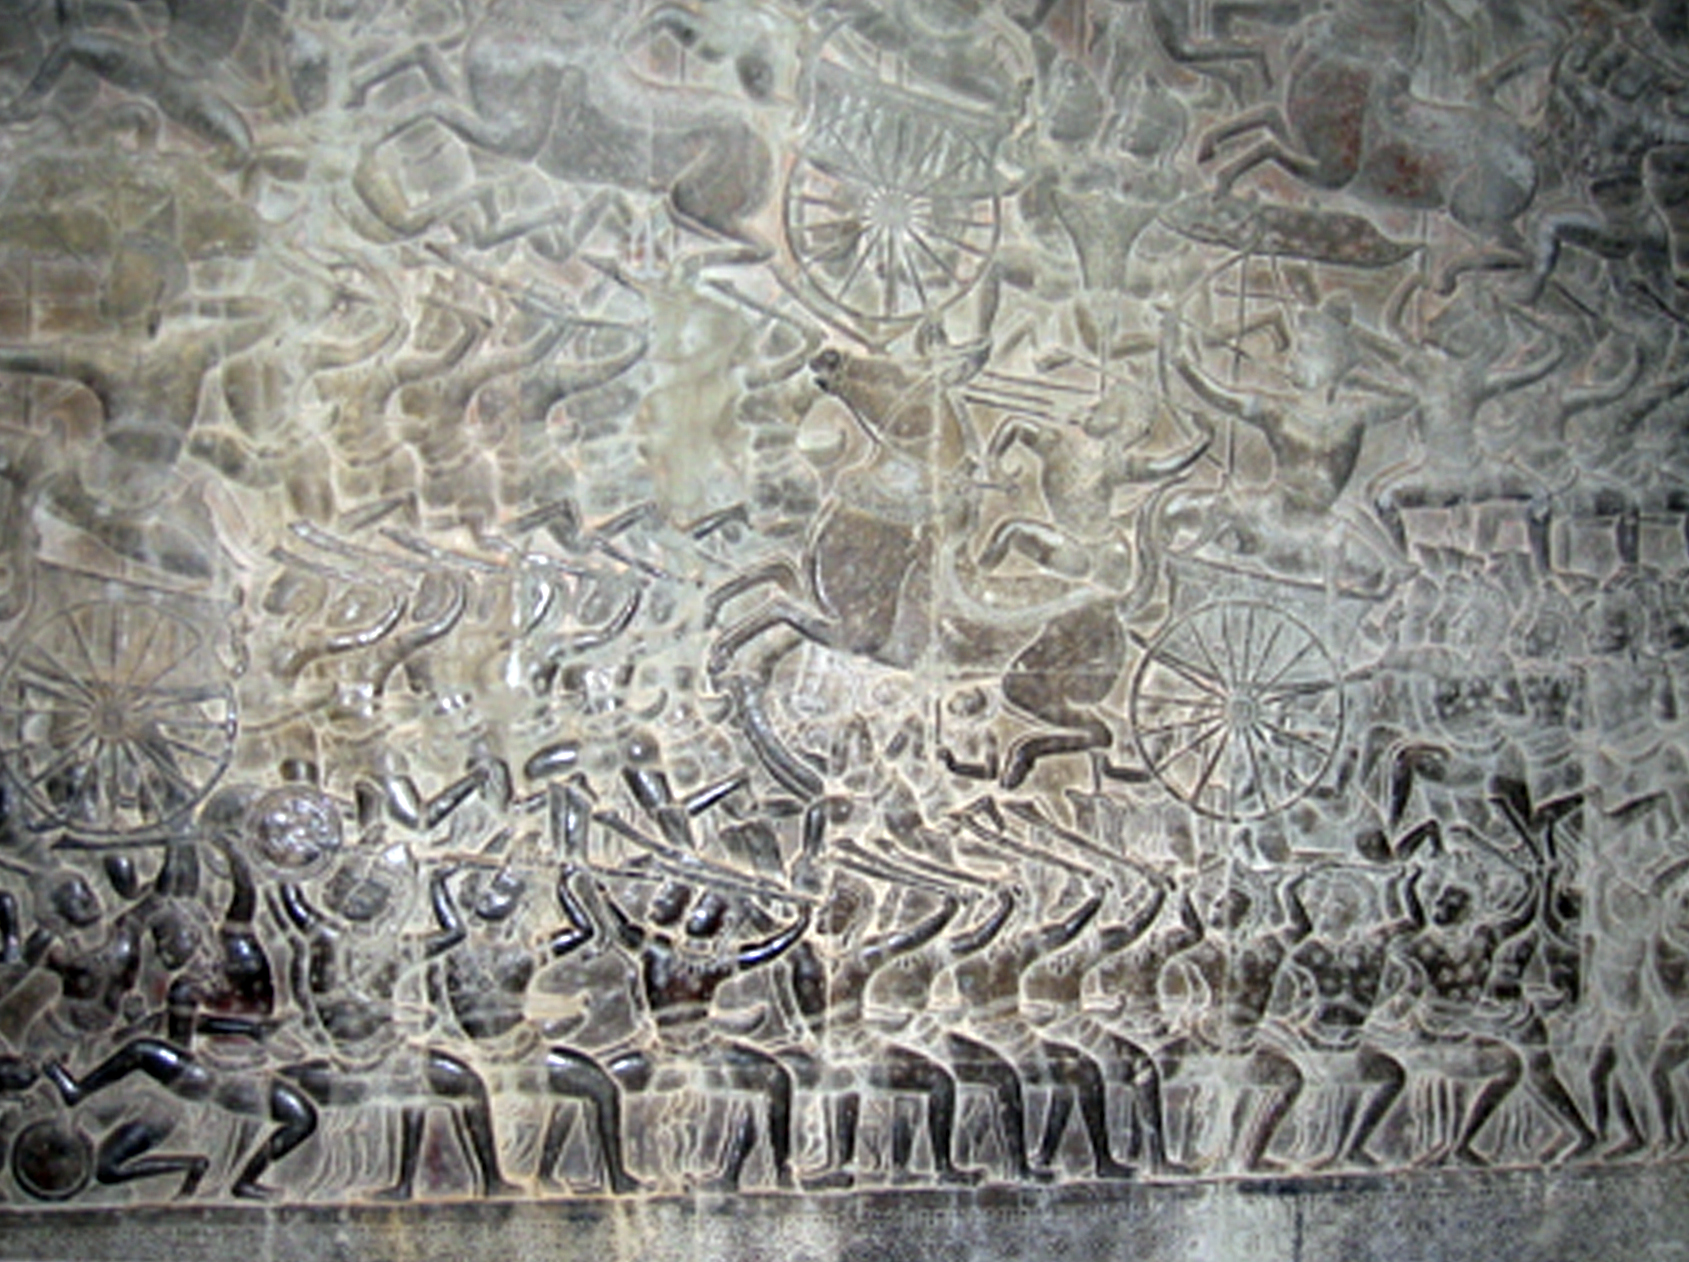 Bas relief showing a battle scene from Mahabharata. Photo credit: Smita Dutta Makhija